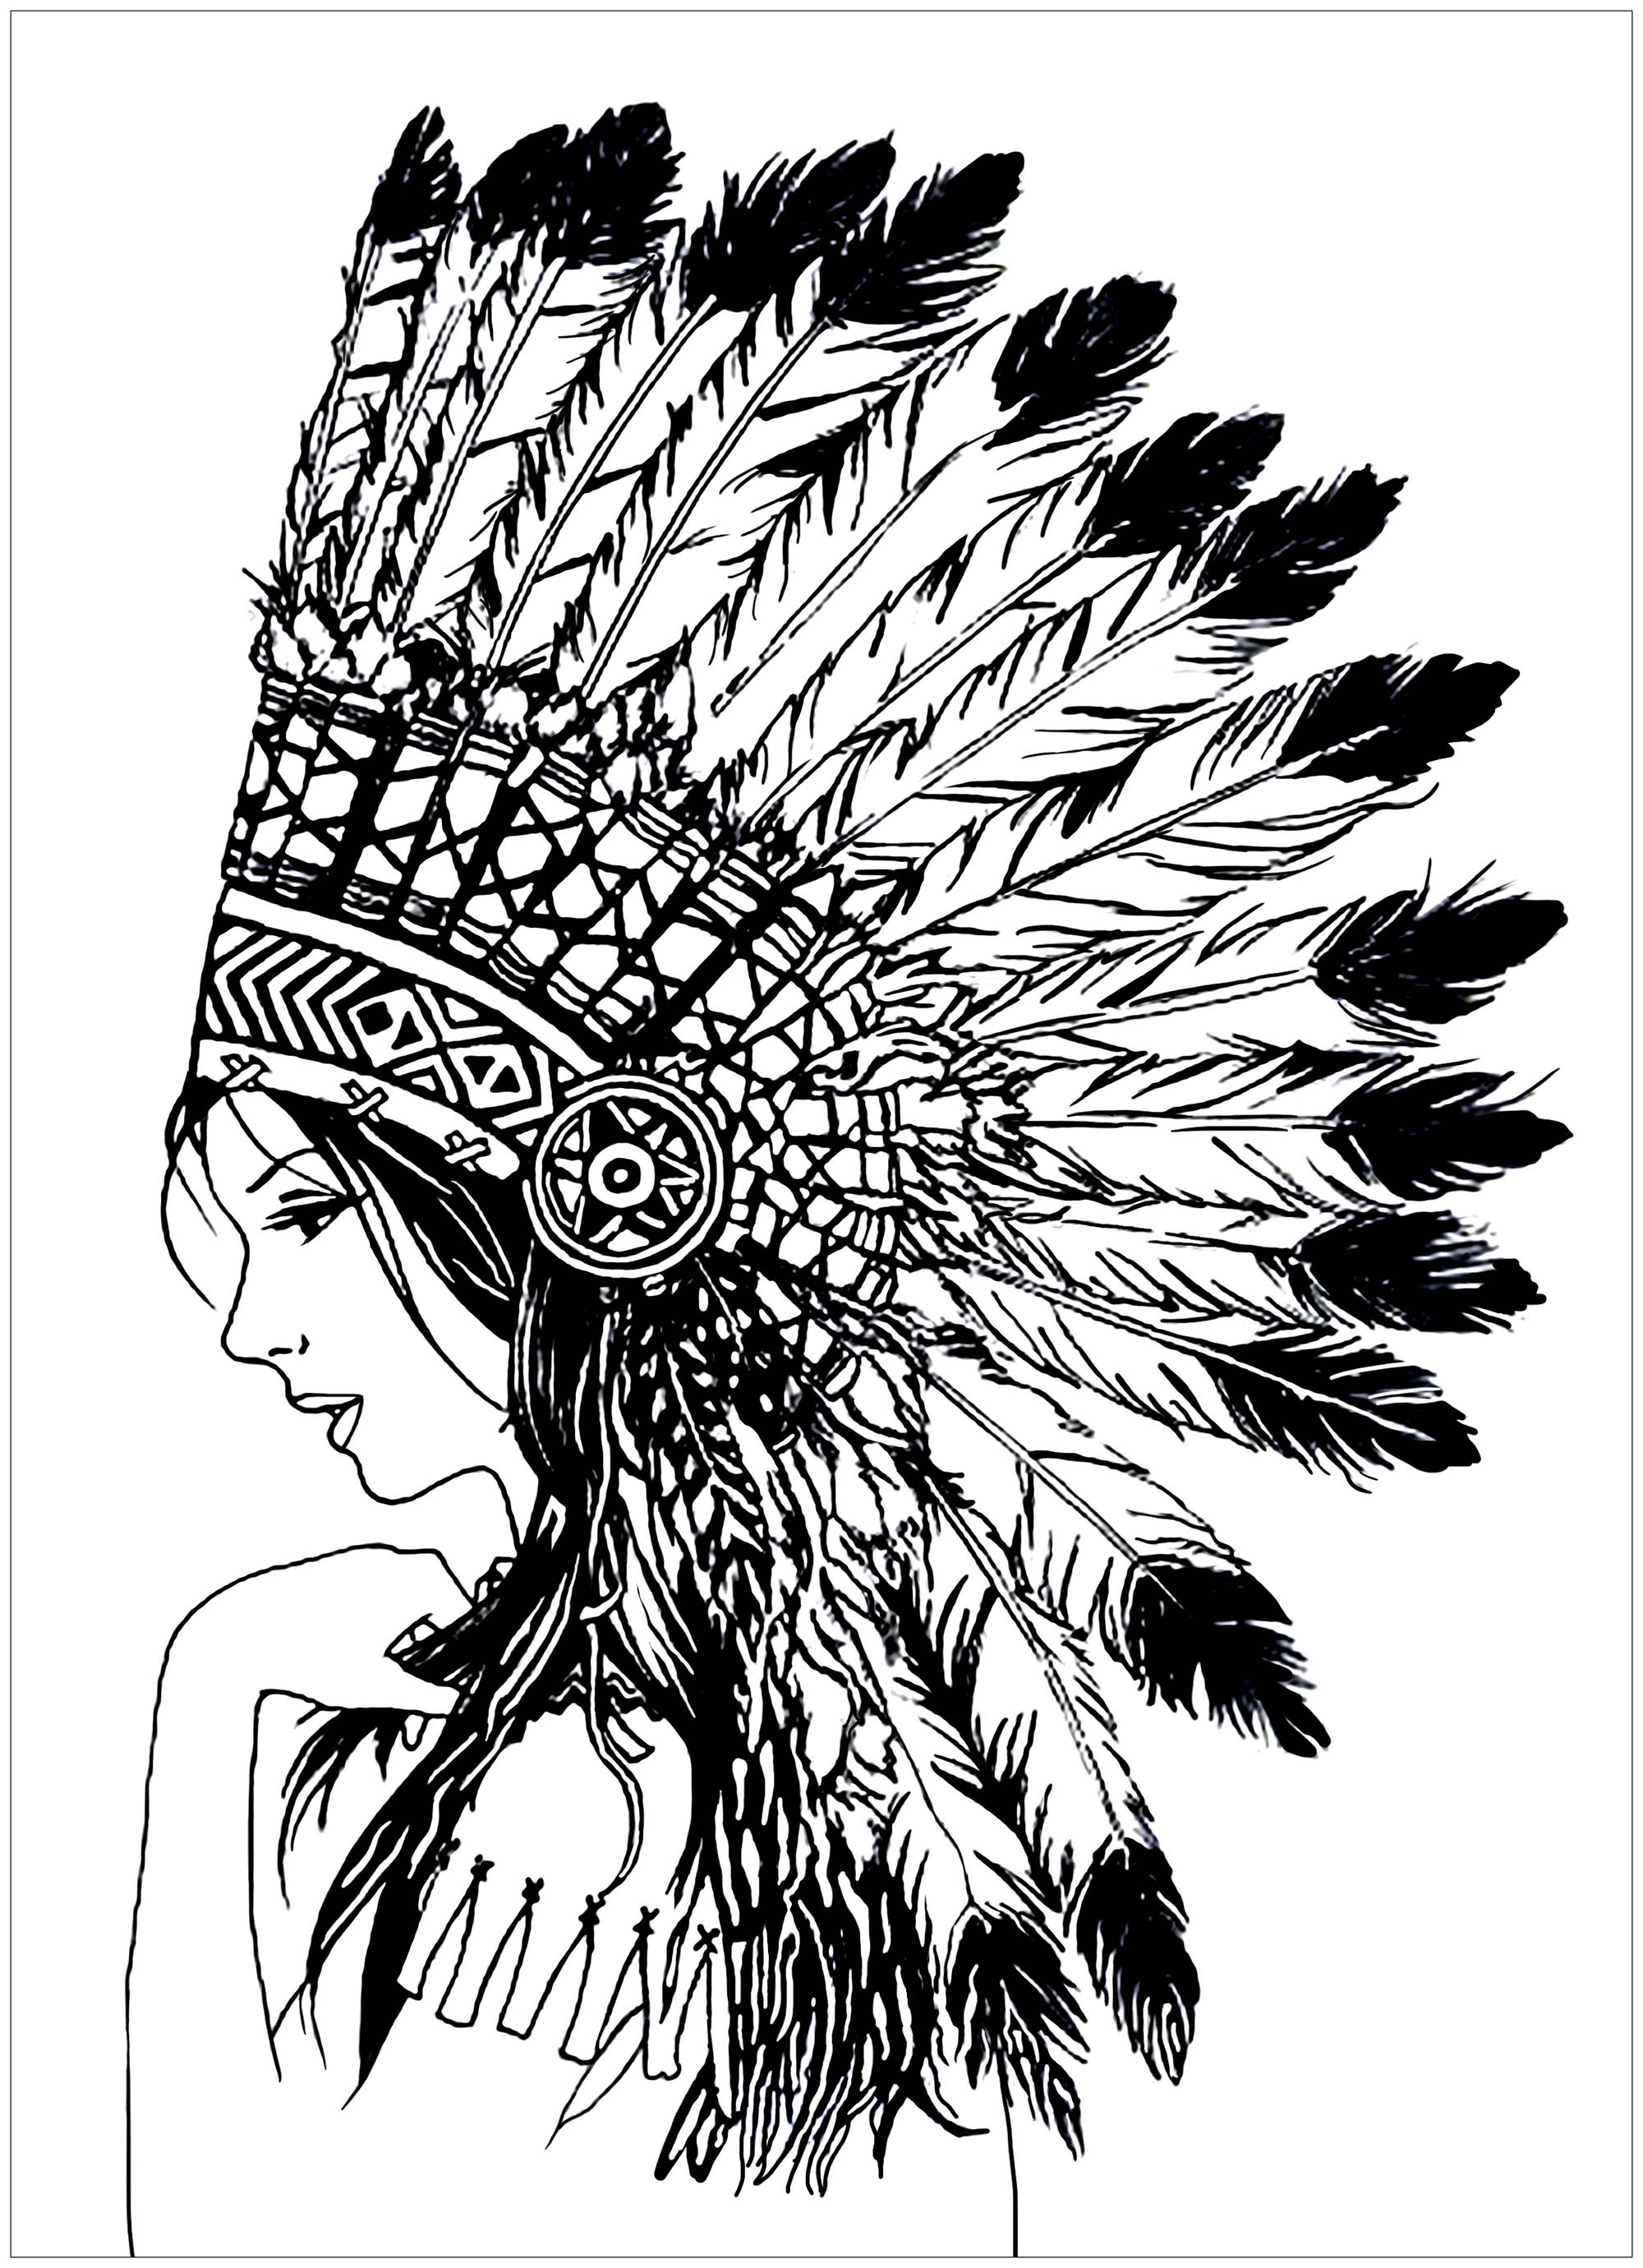 beautiful indian woman native american with headdress with giant feathers